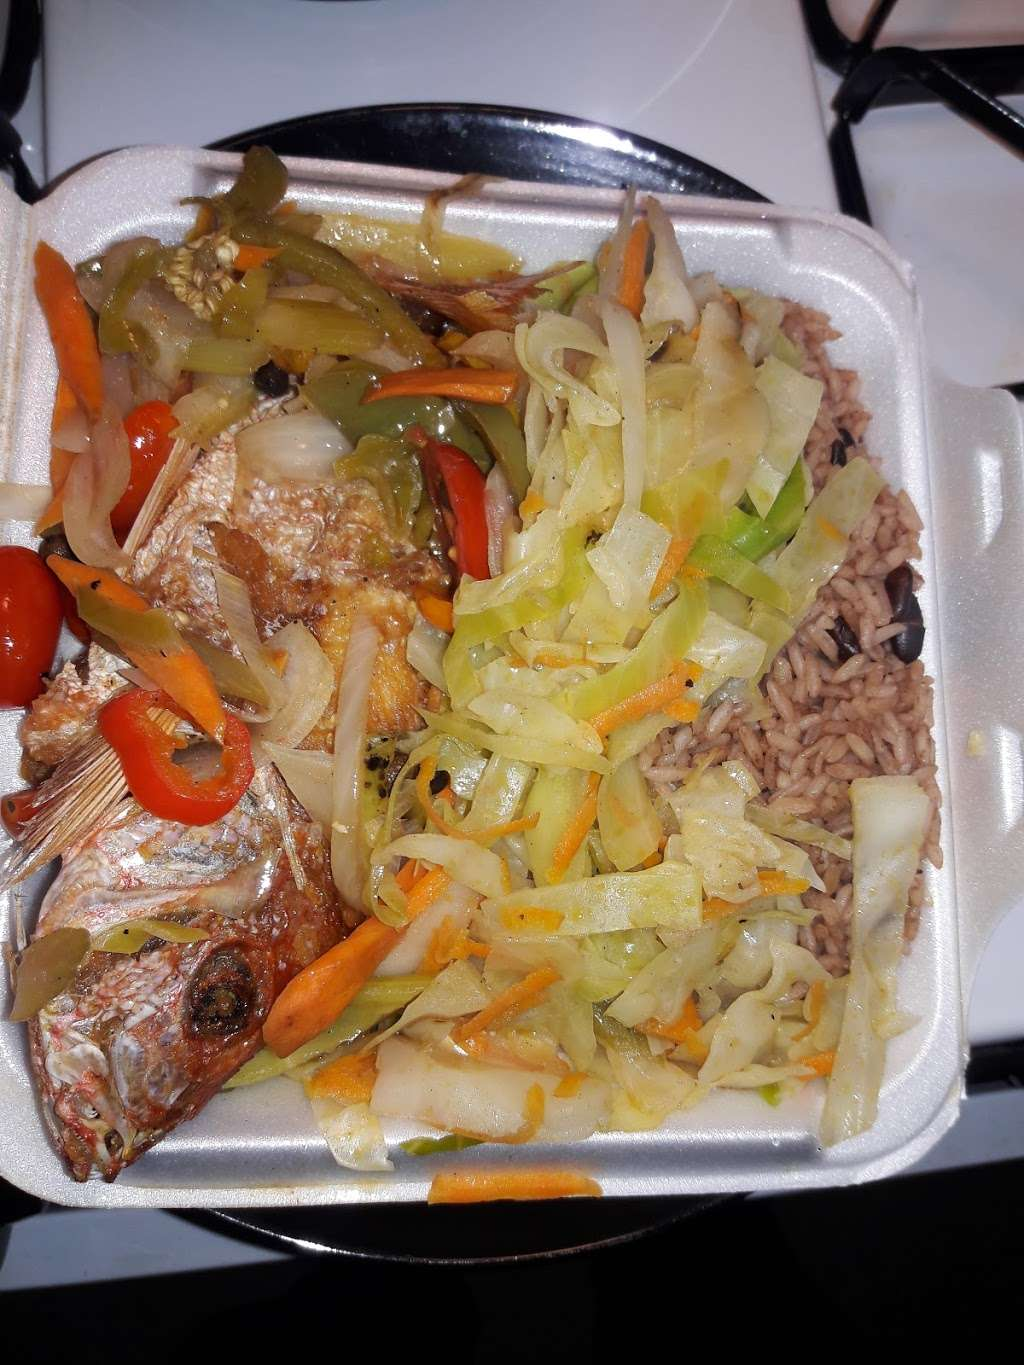 Rayon's Caribbean & International Restaurant - restaurant  | Photo 3 of 3 | Address: 3003A Webster Ave, Bronx, NY 10458, USA | Phone: (718) 584-5488